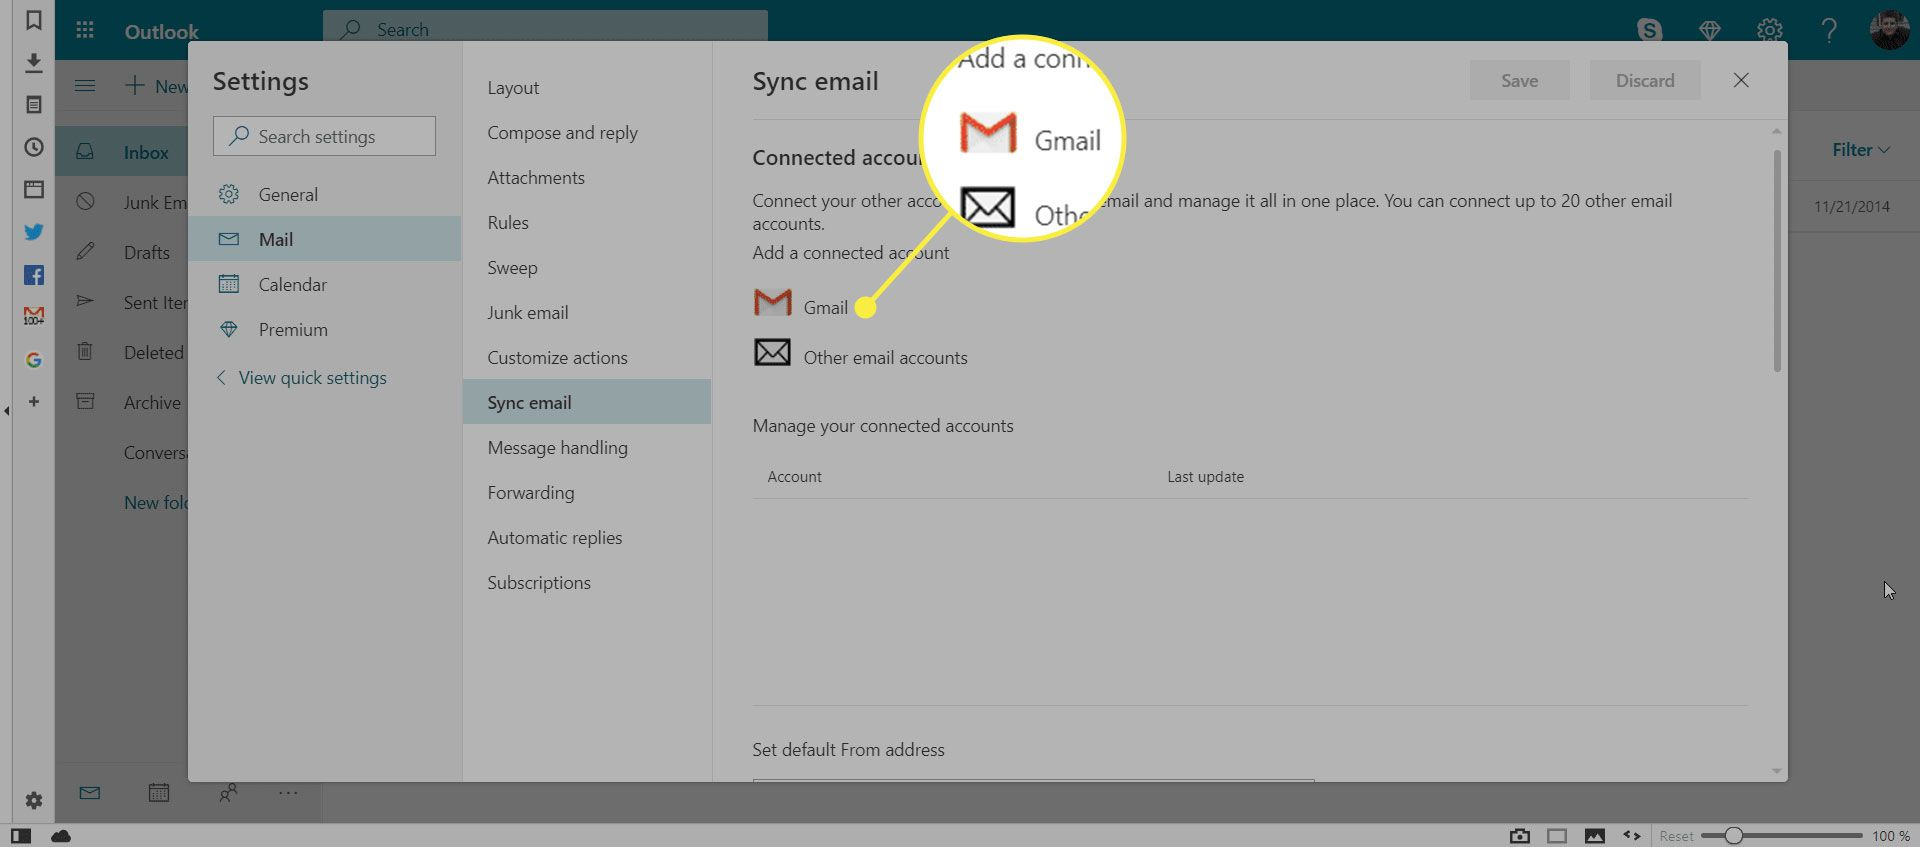 Gmail in the Sync Email menu